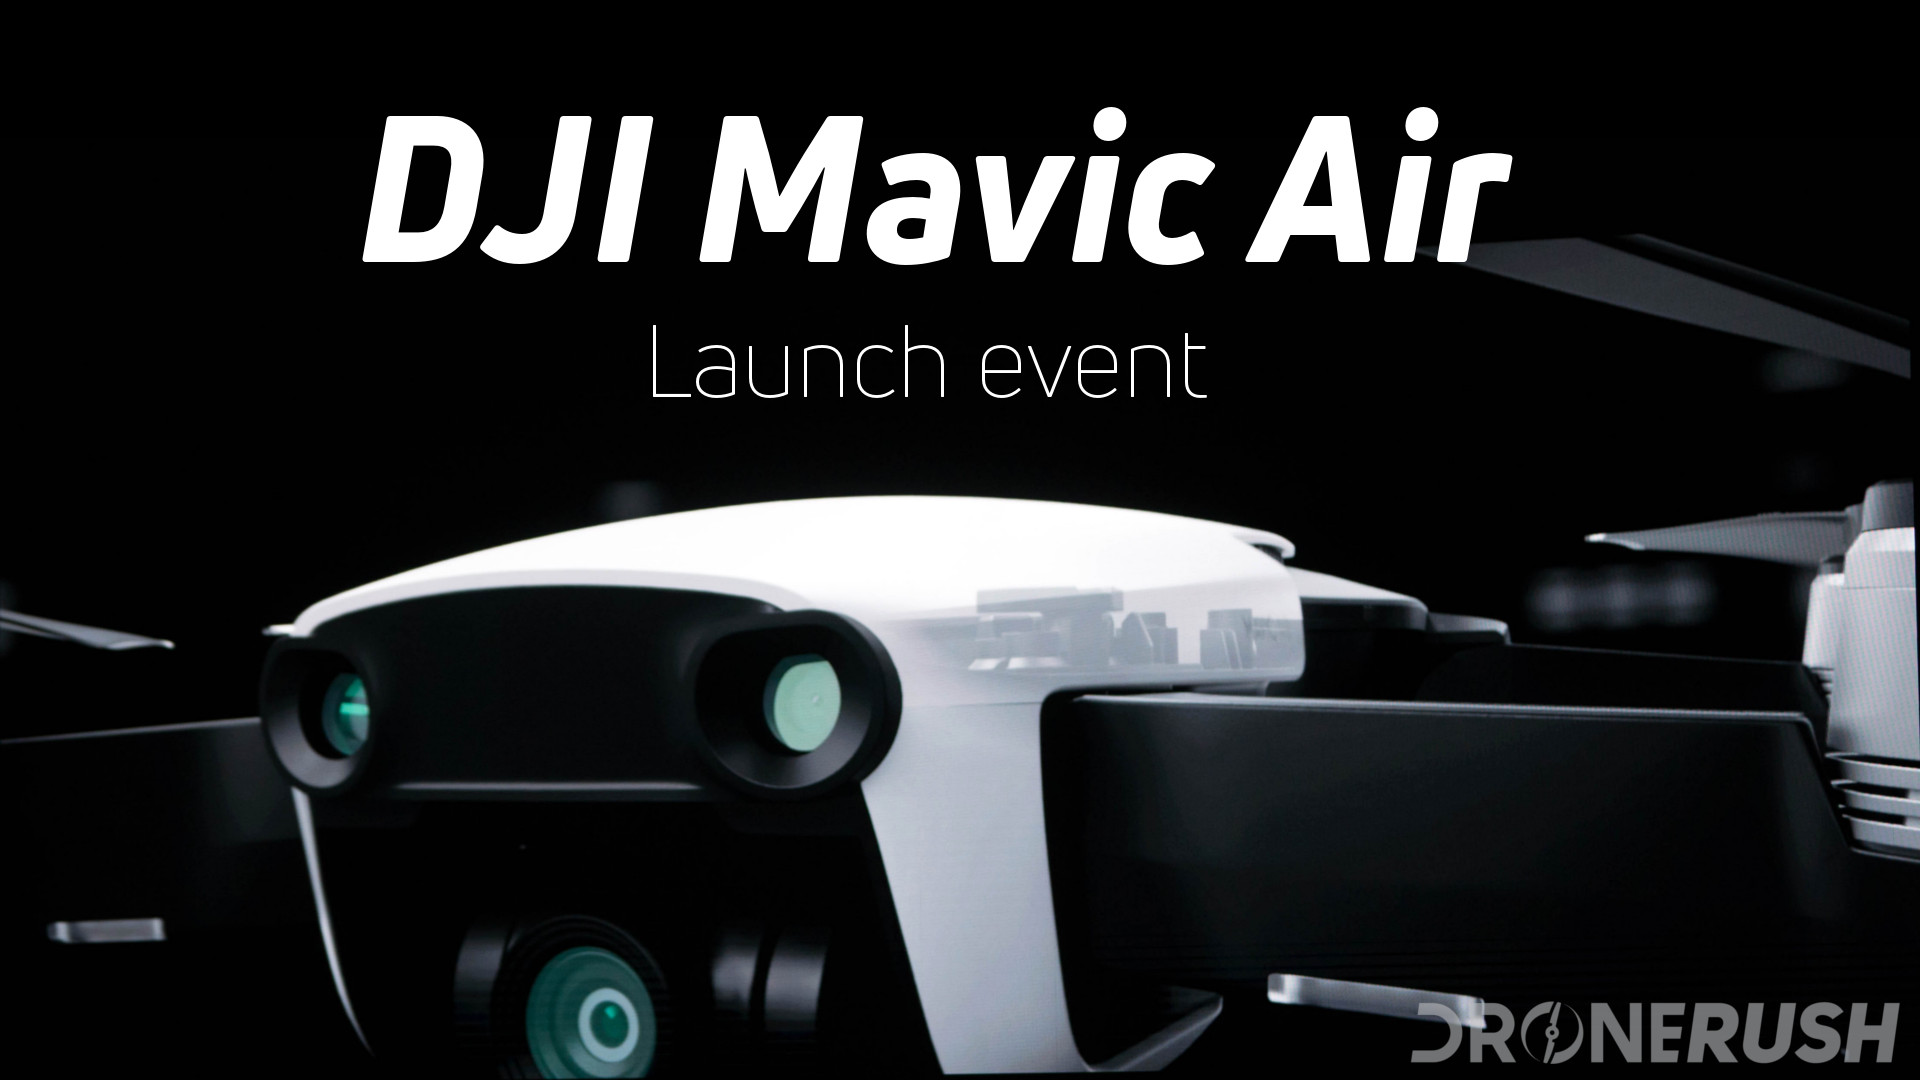 DJI Mavic Air Announced